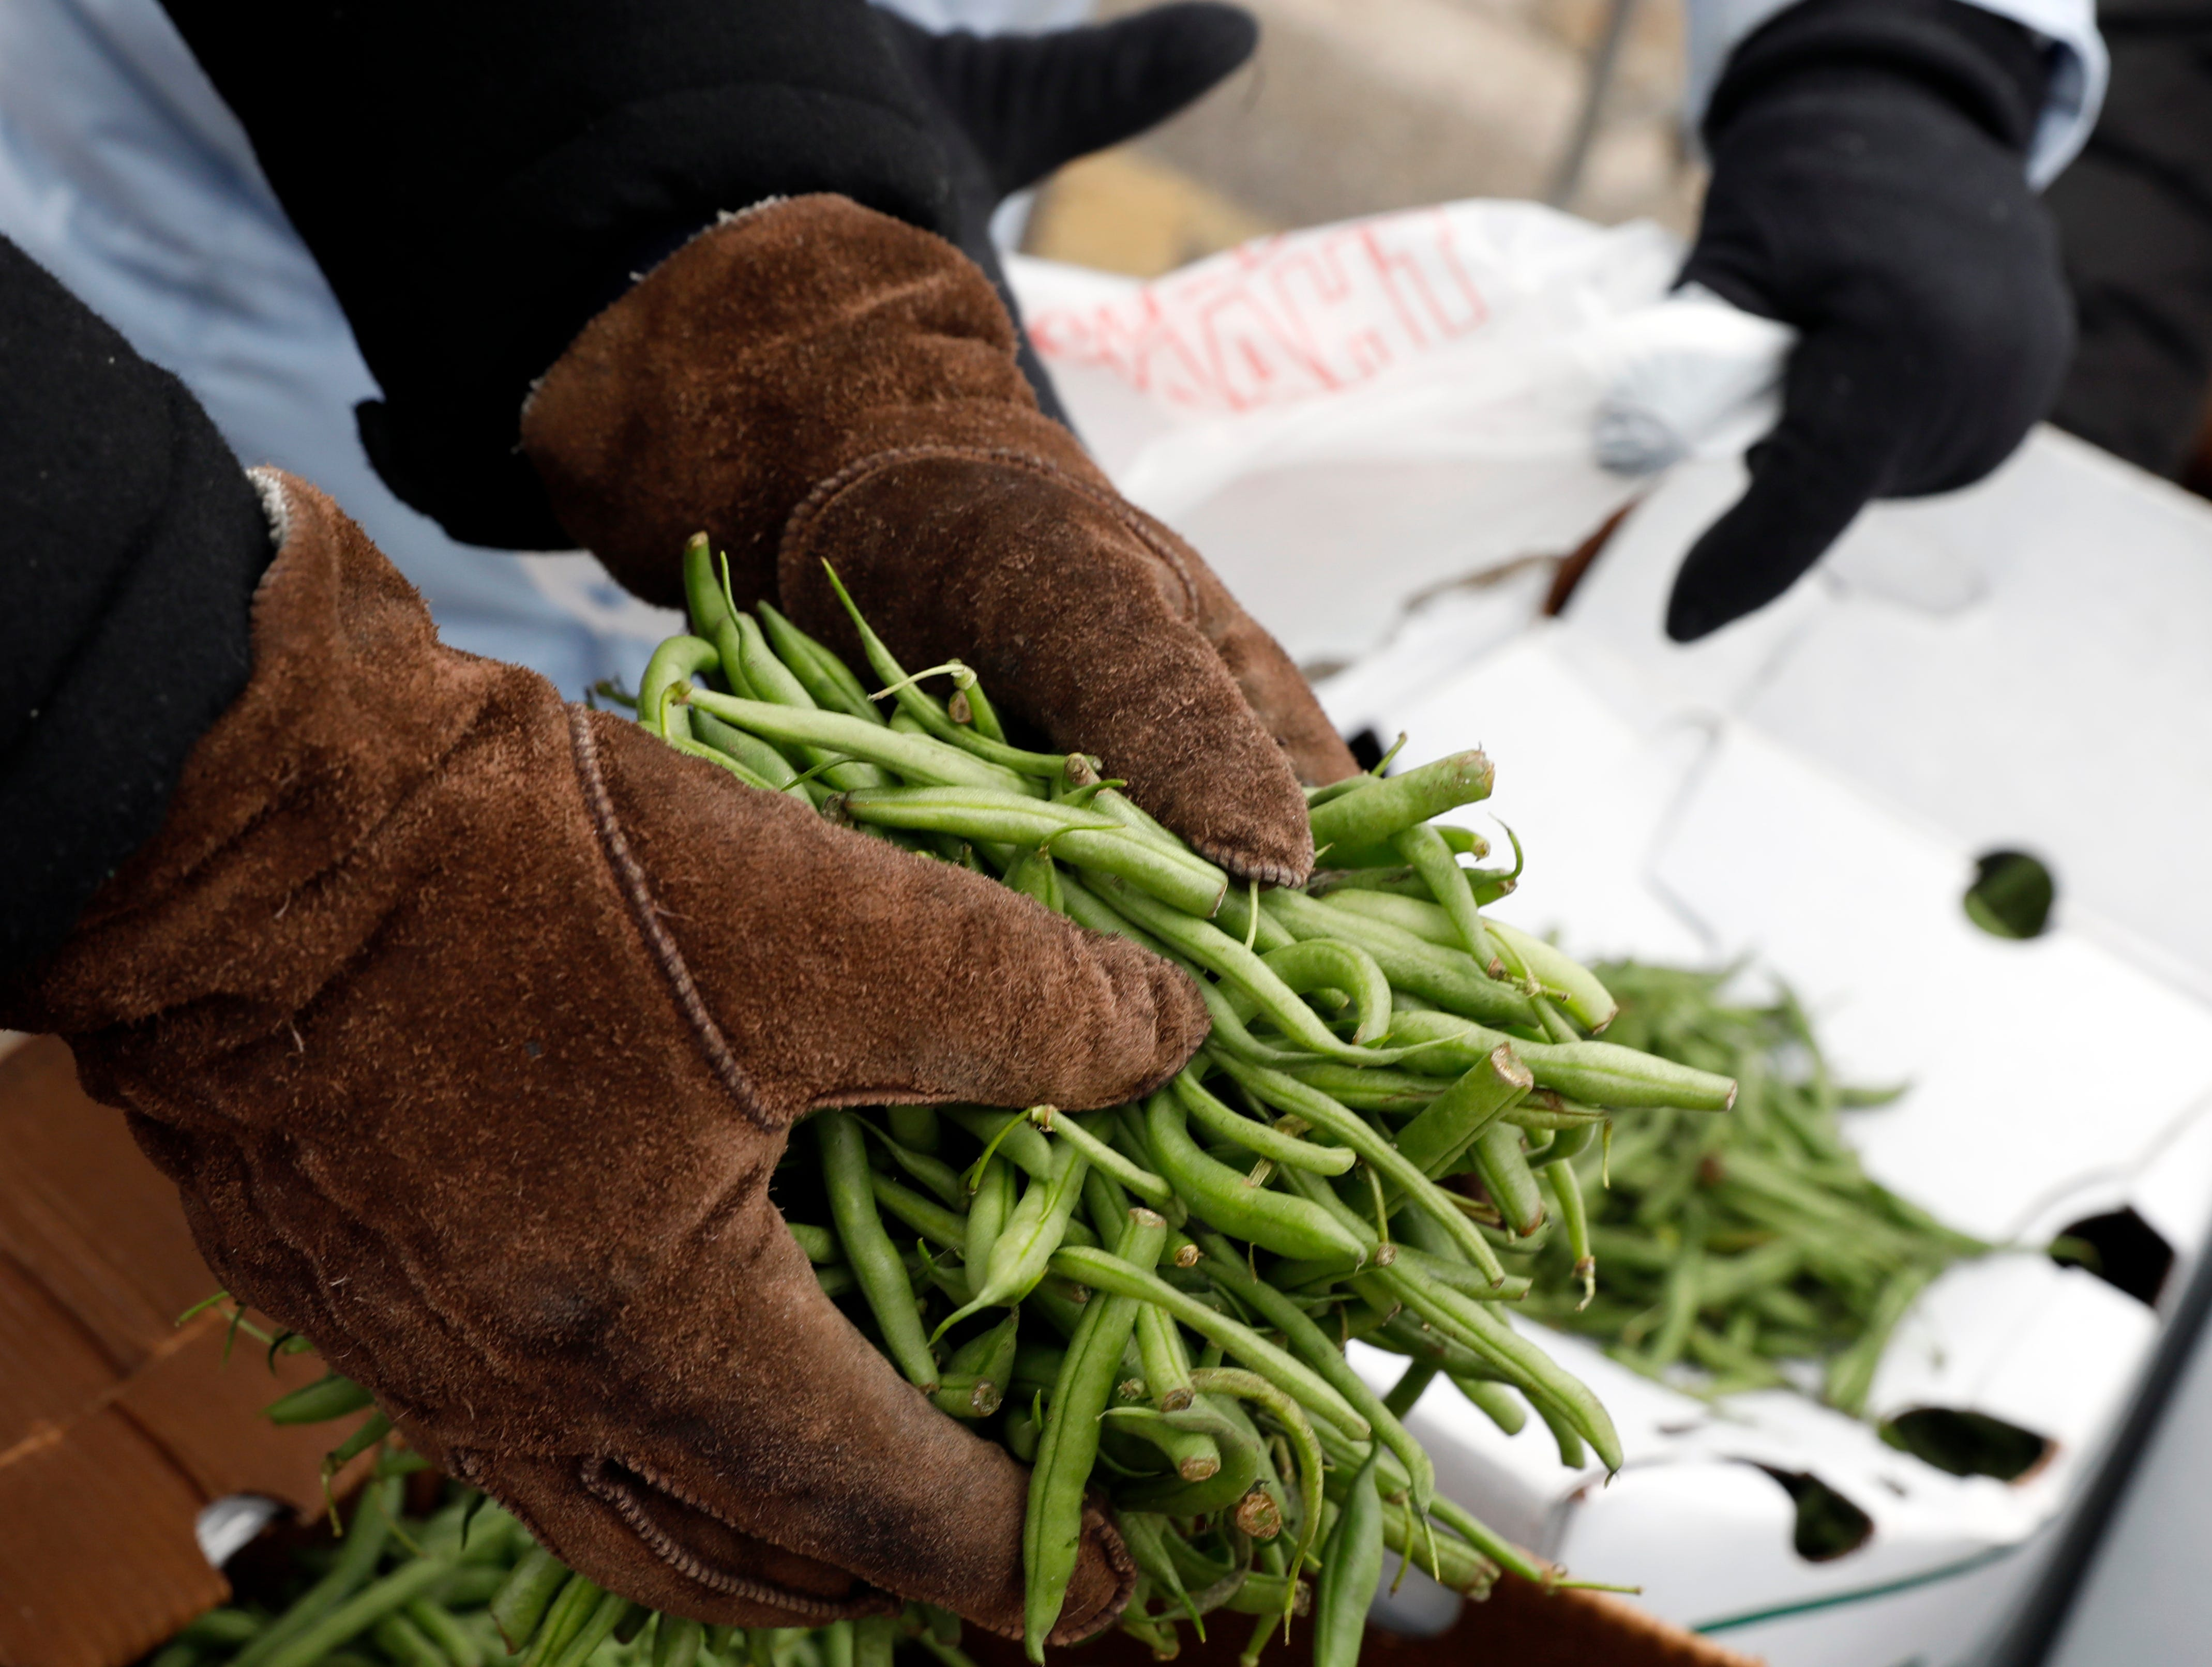 Volunteers bag green beans Friday, Nov. 16, 2018, on East Main Street in Lancaster. The beans were just one of the items given to Lutheran Social Services clients so they can create a Thanksgiving meal.